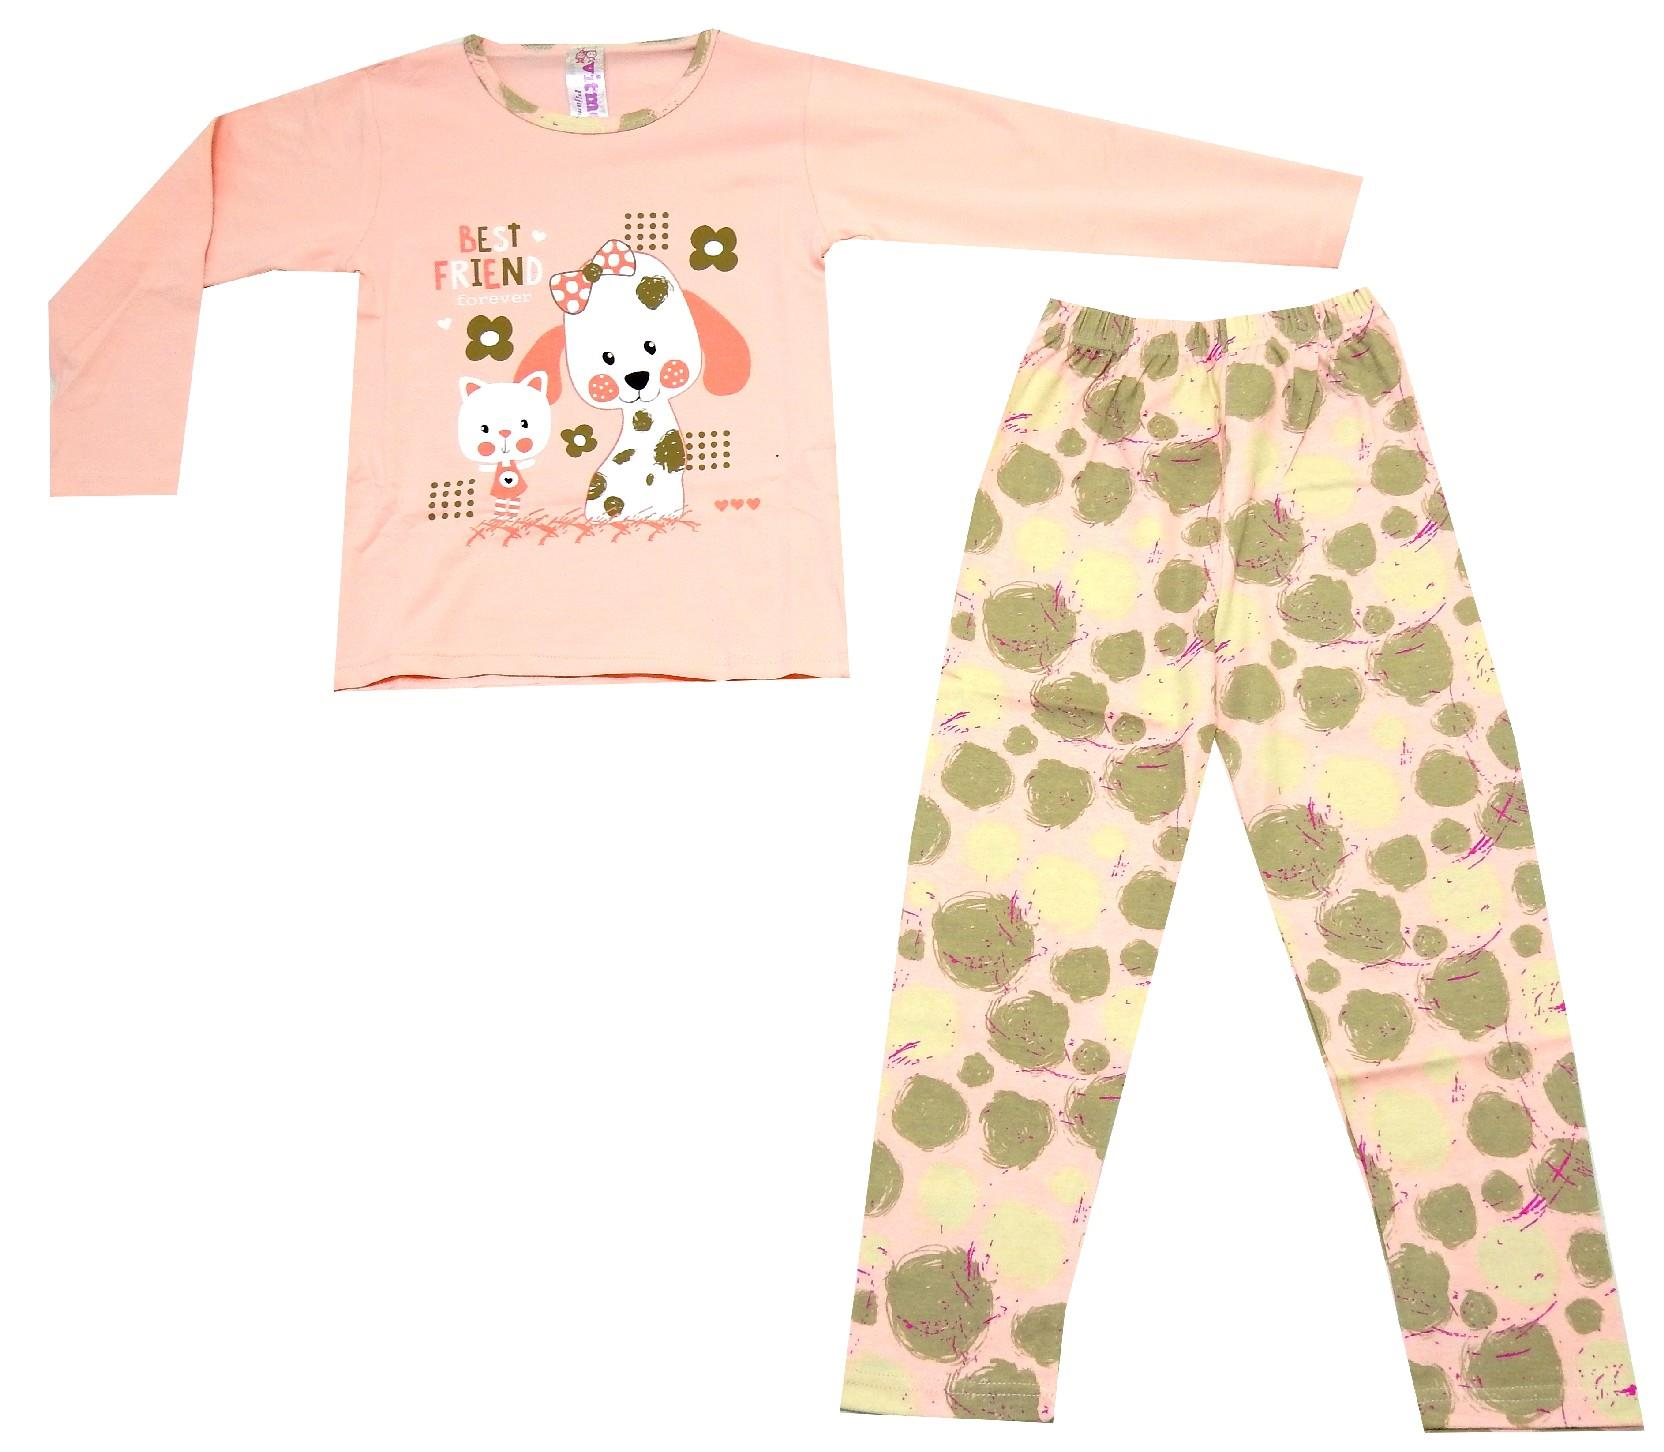 BEST FRIEND DOG & CAT PRINTED DESIGN PYJAMAS FOR GIRL (7-8-9 AGE)